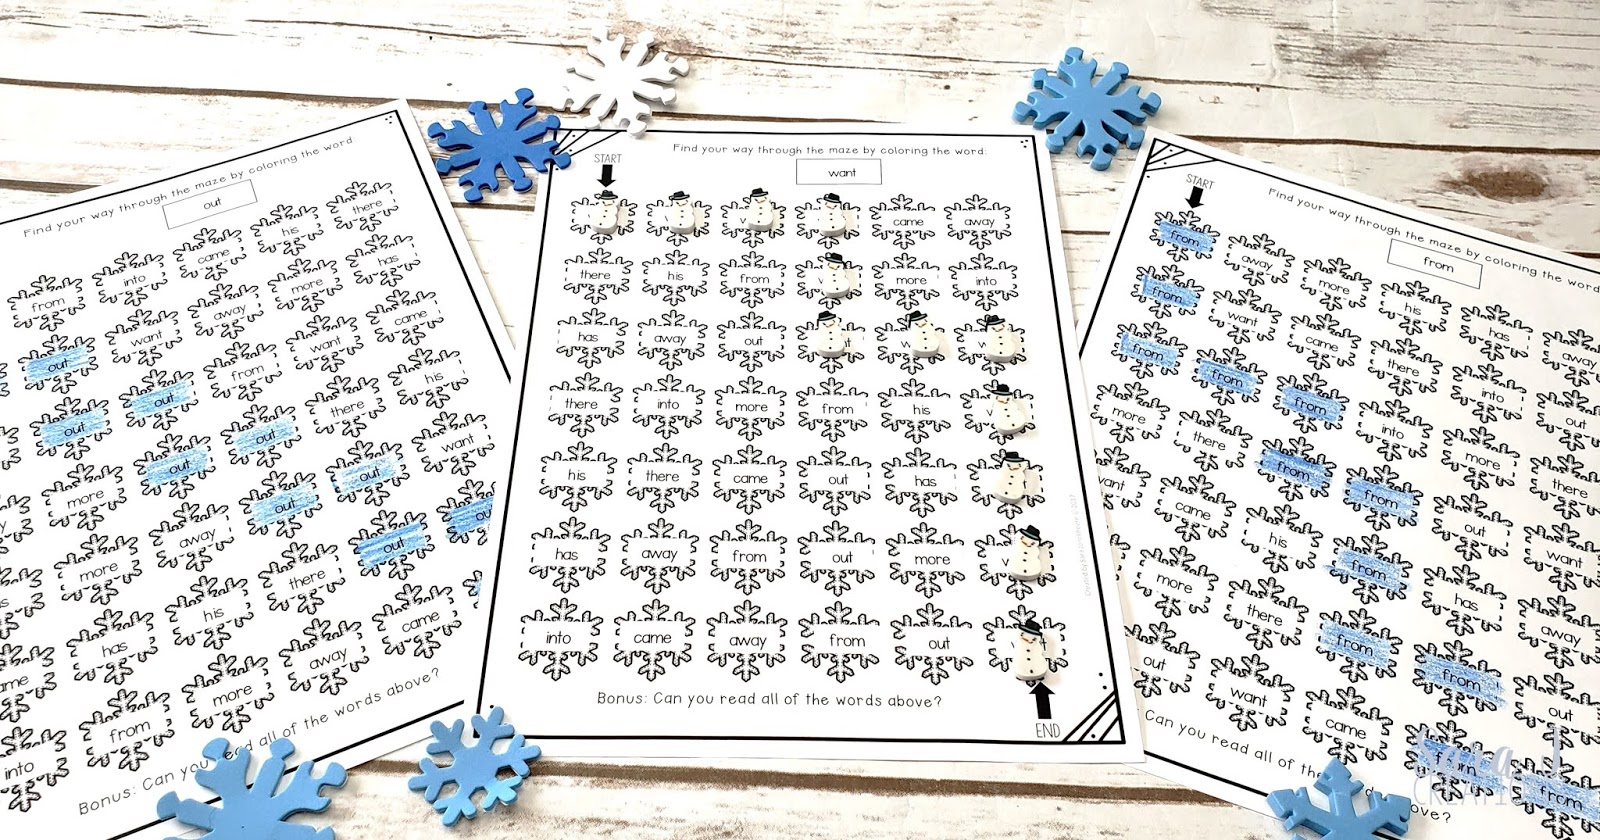 Free sight words printable mazes. With a fun snowflake theme, these are perfect for practicing any sight word list during the winter months.